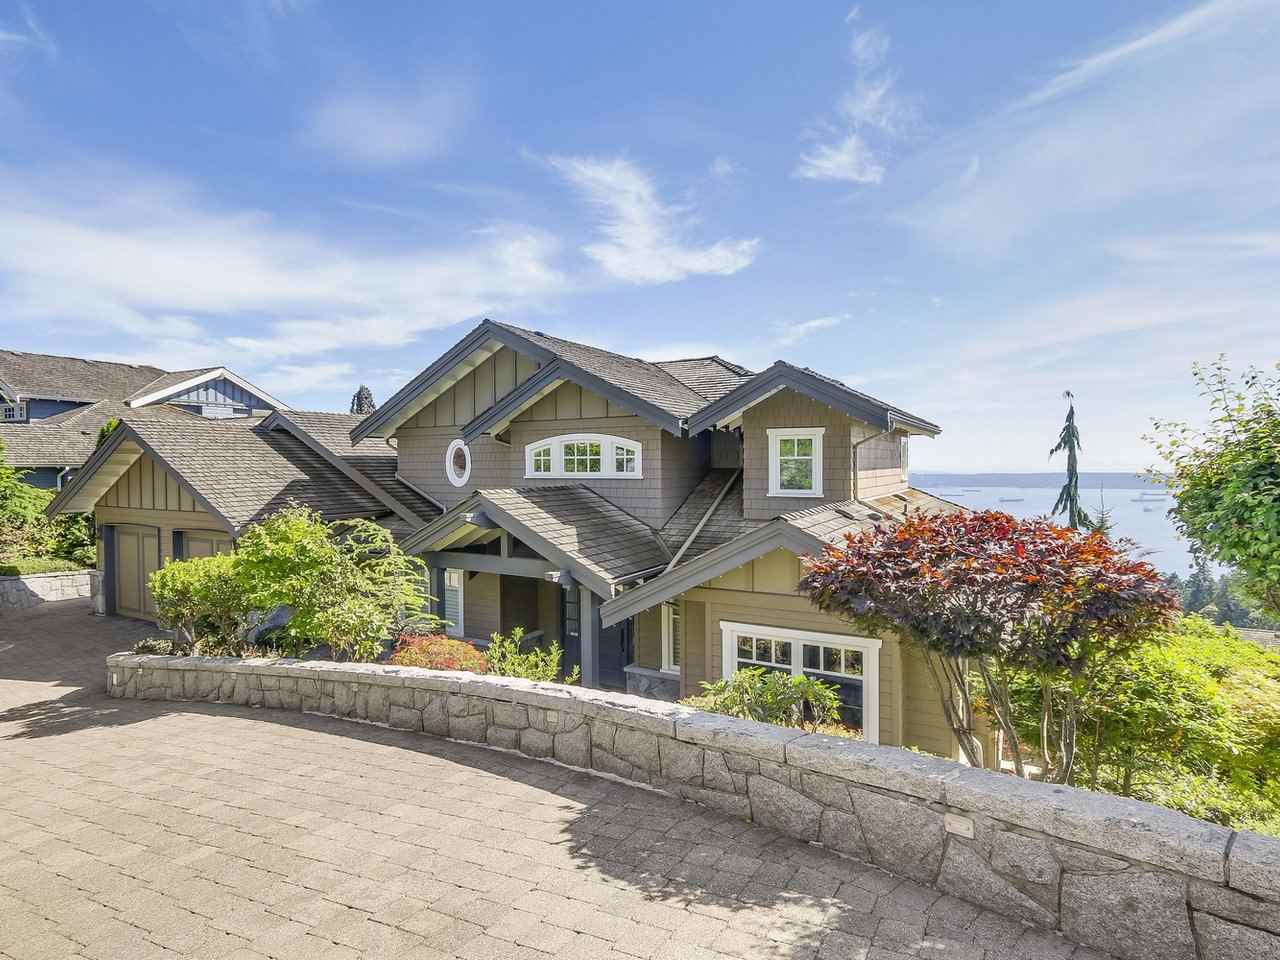 Prestigious Whitby Estates South-facing home, great layout, over 180 degrees panoramic view of the ocean, City and UBC. Original home of a master custom builder, environmental friendly quality materials & workmanship. Very spacious floor plan for growing family, 5 bedrooms, 6 baths, 5 fireplaces, state-of-the-art media room, wet-bar, wine cellar, huge recreation room that walks out to a garden with a pool and hot-tub. Gourmet kitchen with top-of-the-line appliances and walk-out to a huge patio for BBQ and entertainment. A walk-out balcony from the dining room and the master bedroom to enjoy the beautiful irreplaceable views and cruise ships sailing by. Air-con, most tiled floors are hot water heated, all other areas forced-air.